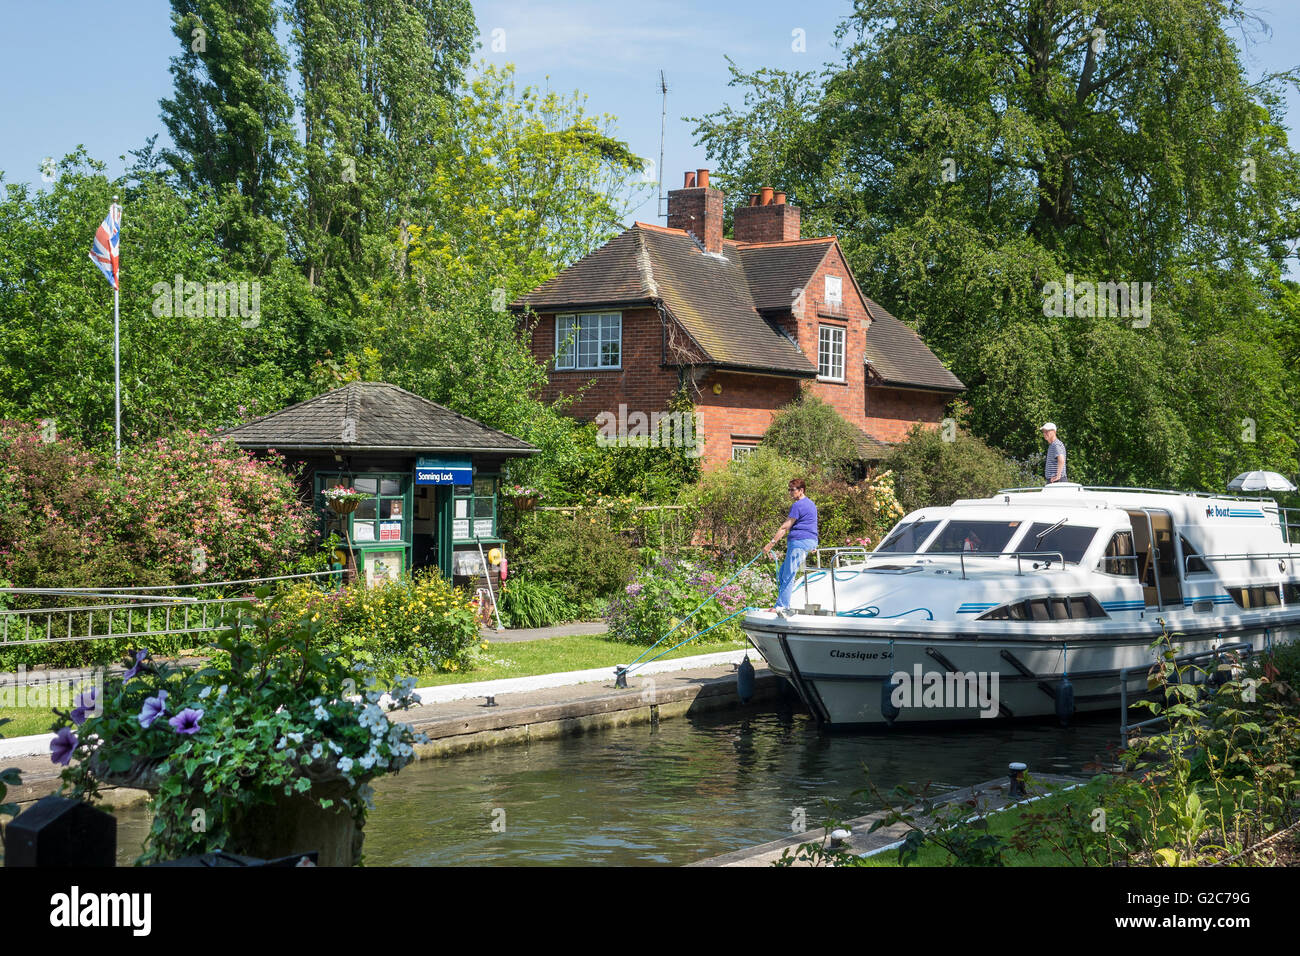 England, Berkshire, Sonning lock, River Thames Stock Photo